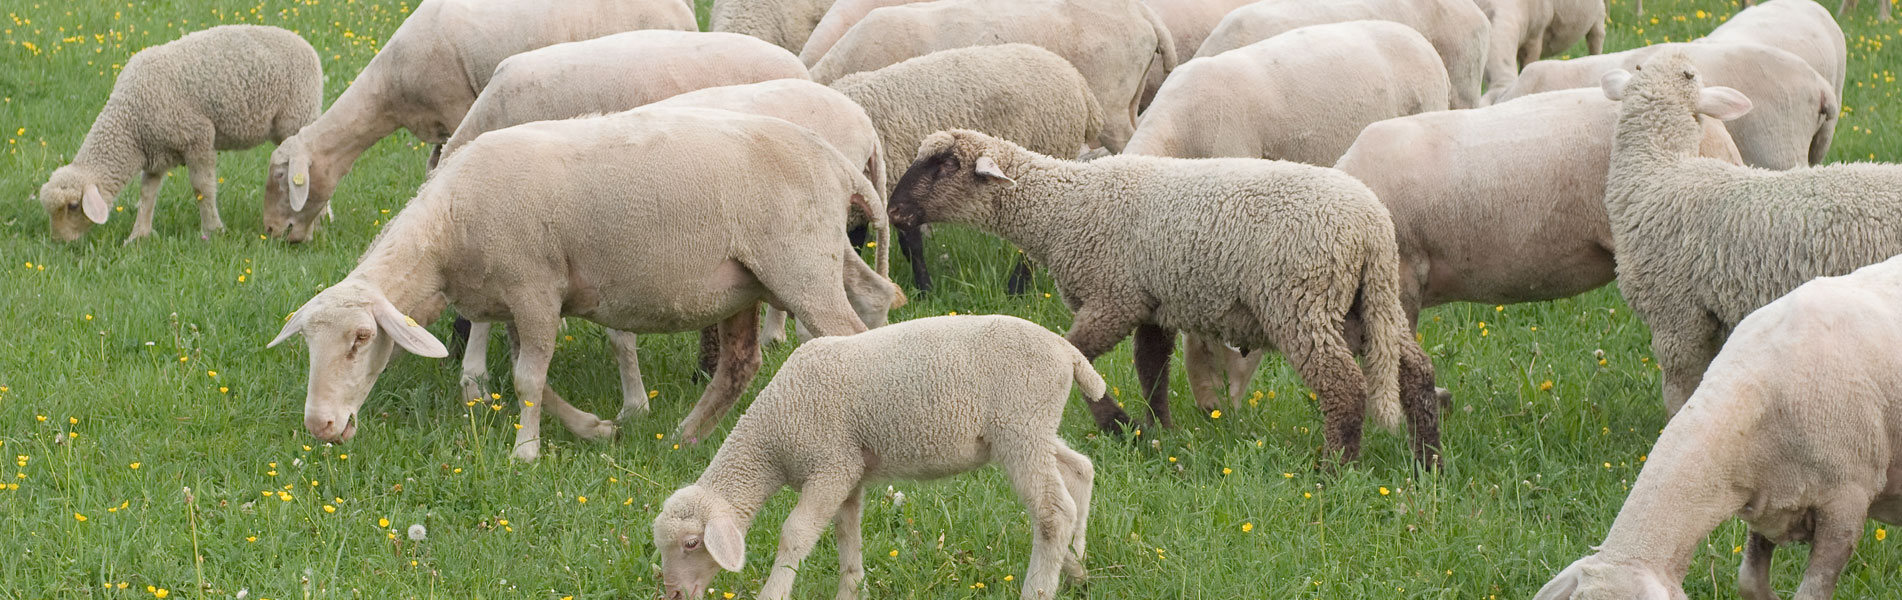 sheep-feed-1920x600_banner